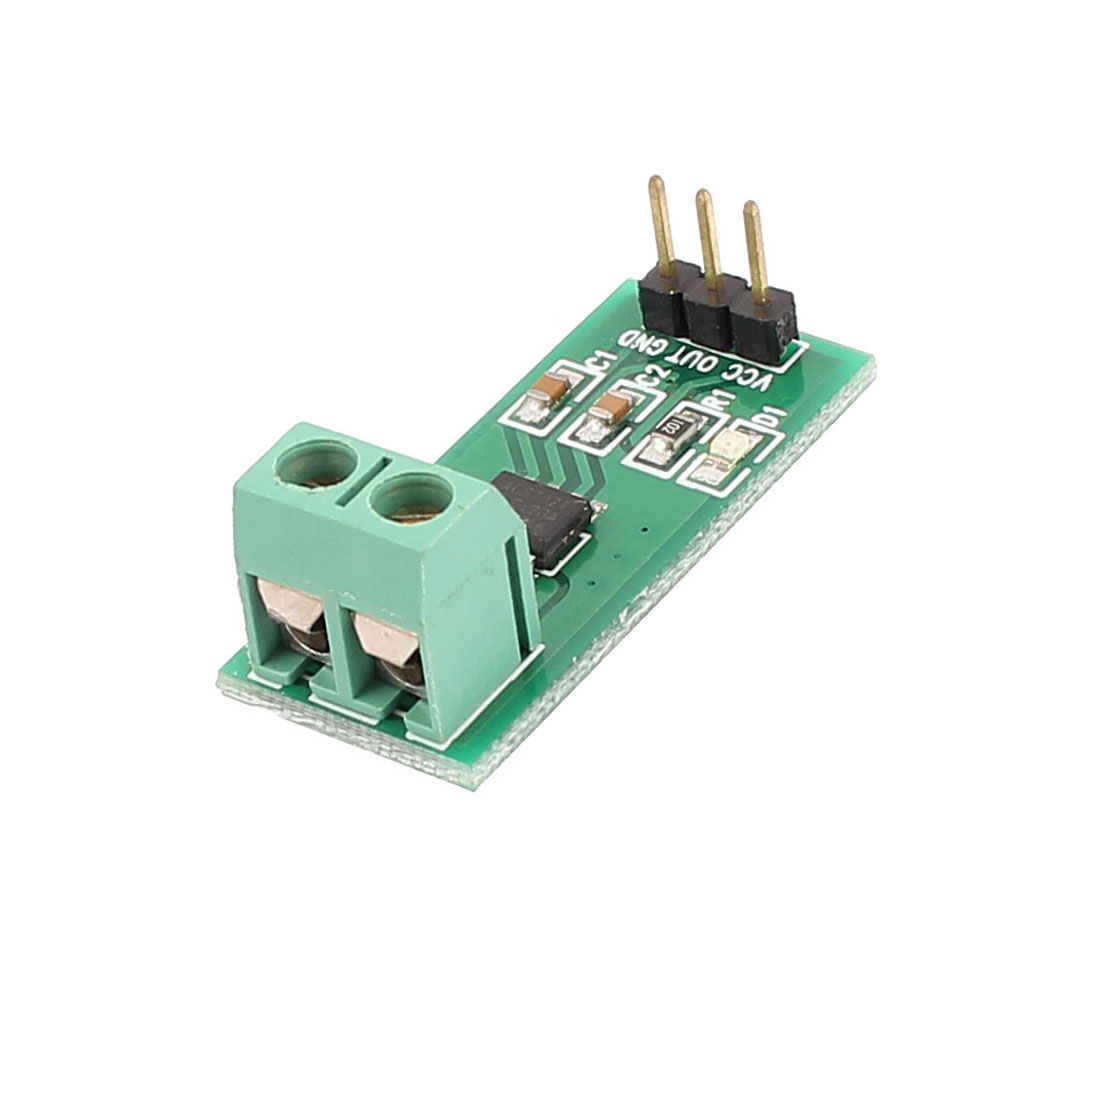 20A Power Supply Measuring Range Current Circuit Sensor ACS712 Module